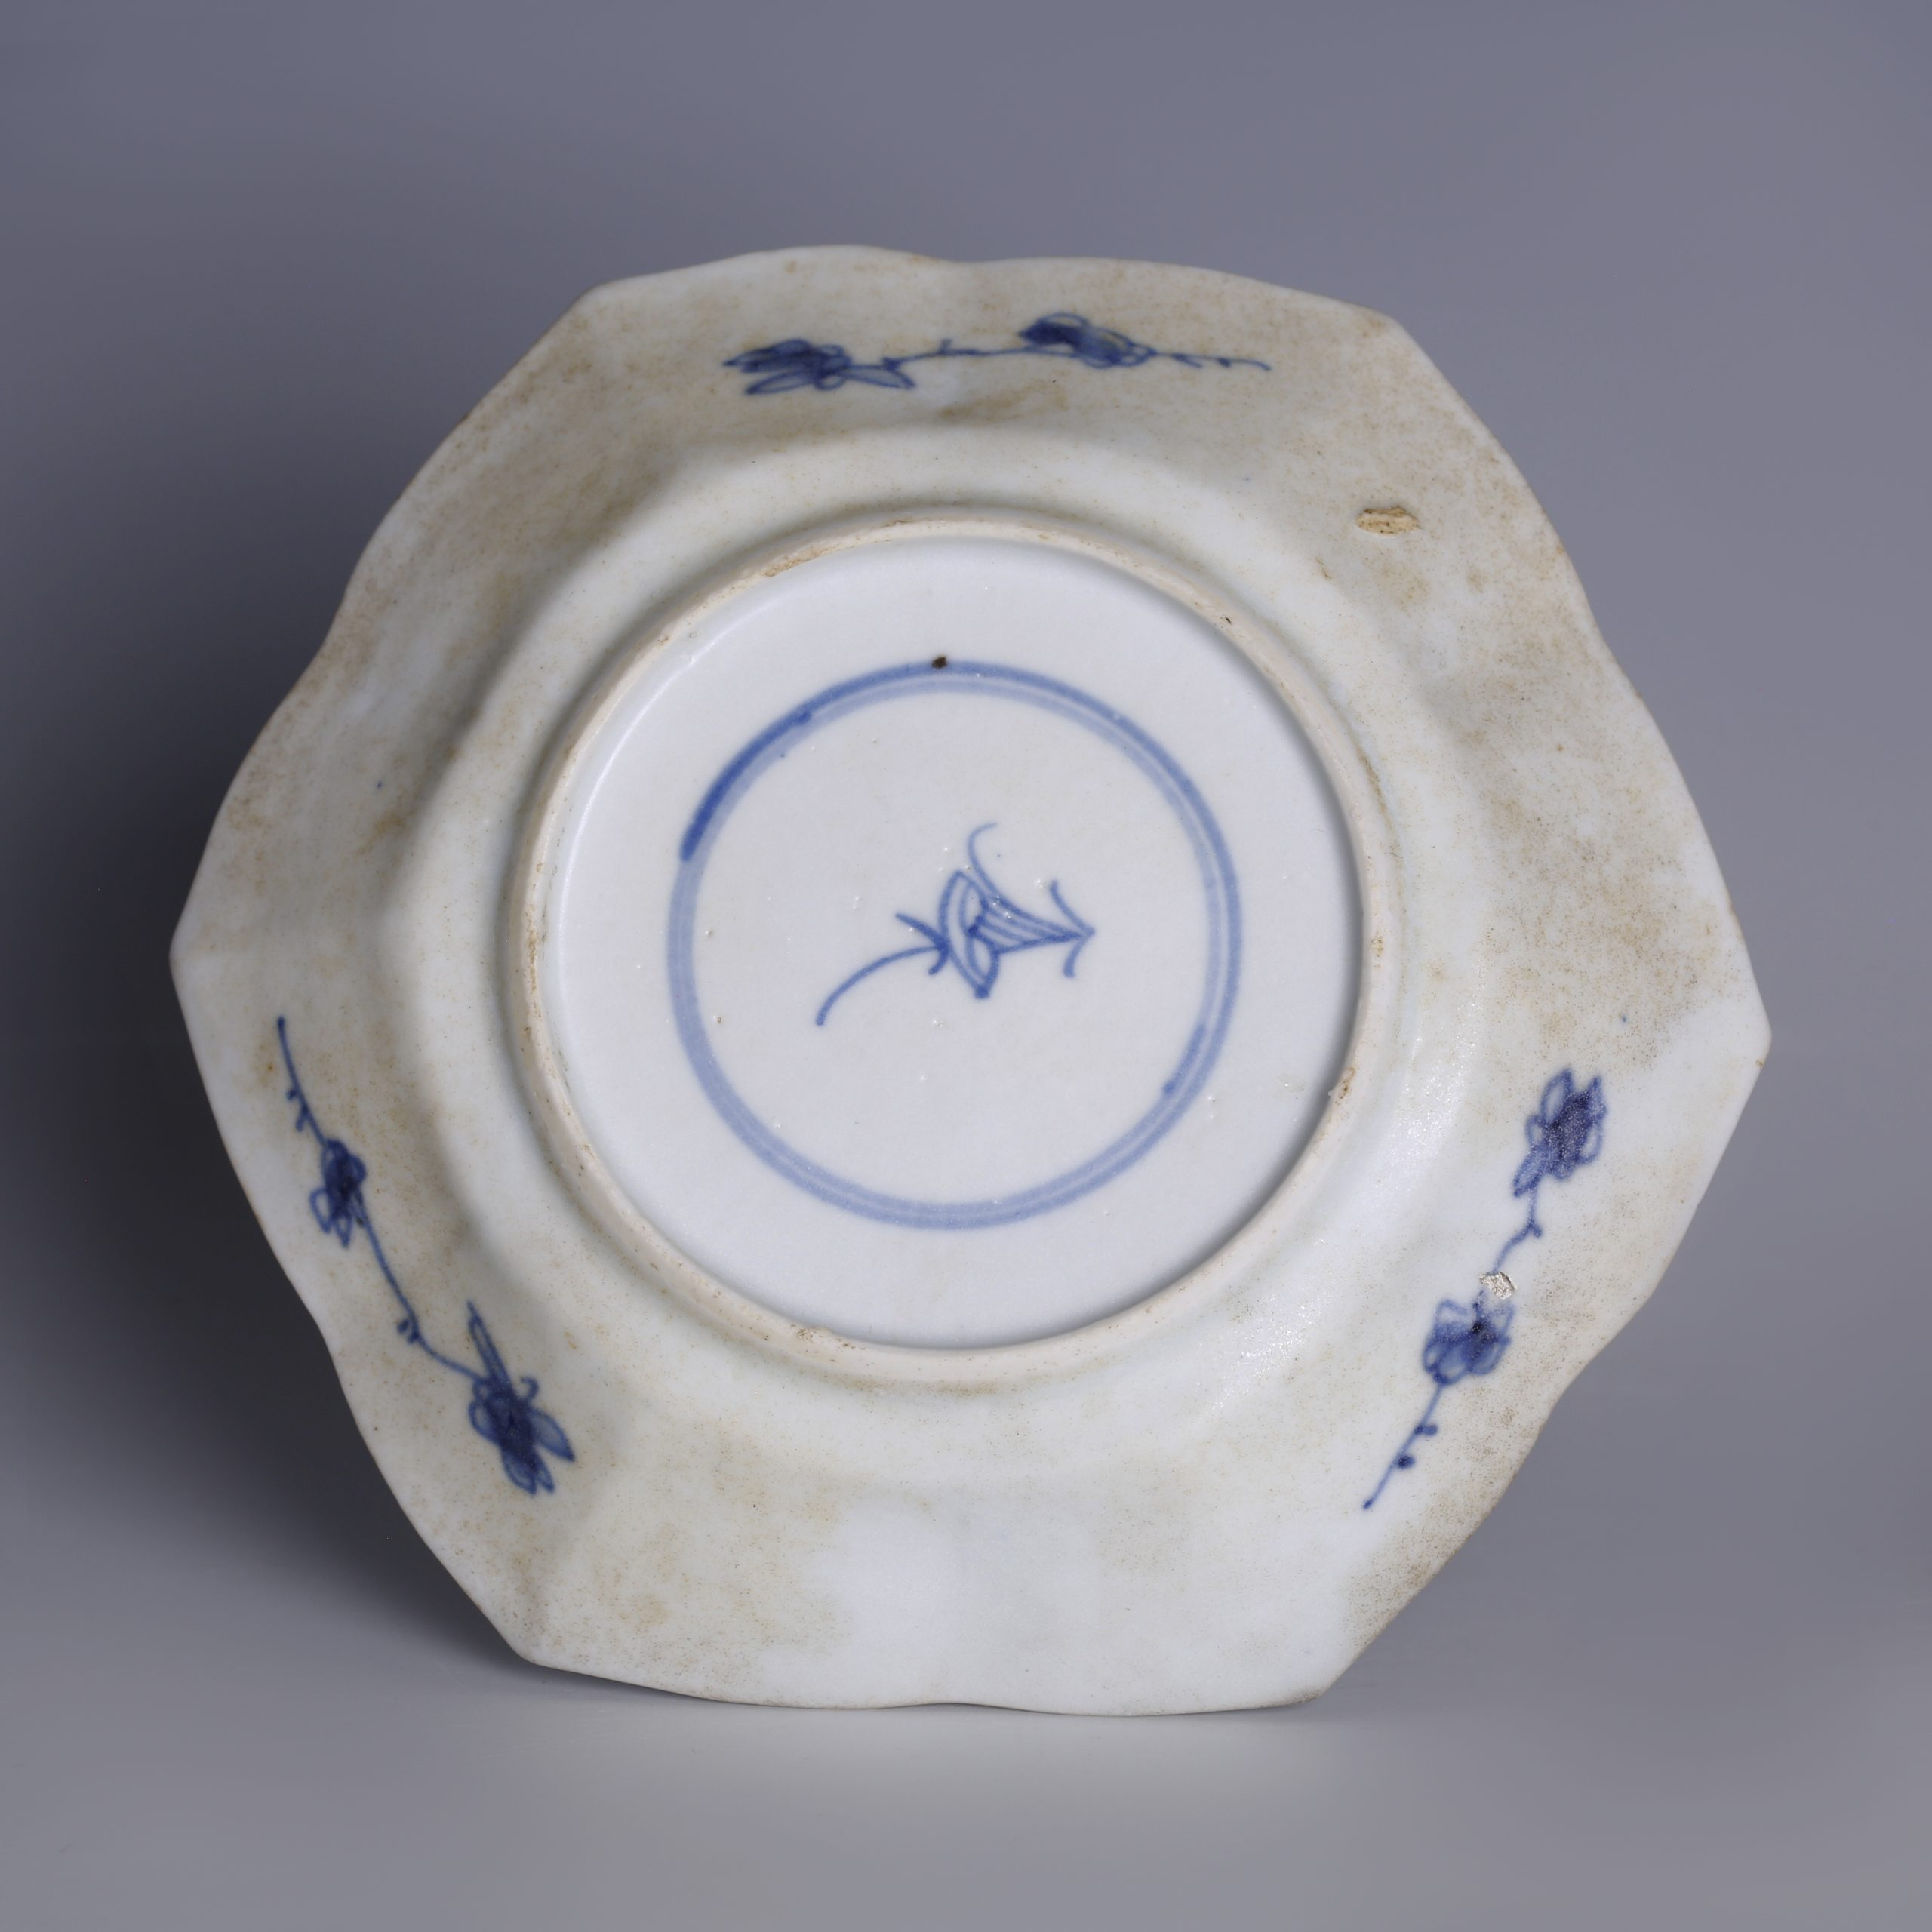 Kangxi Blue and White Export Ware Saucer